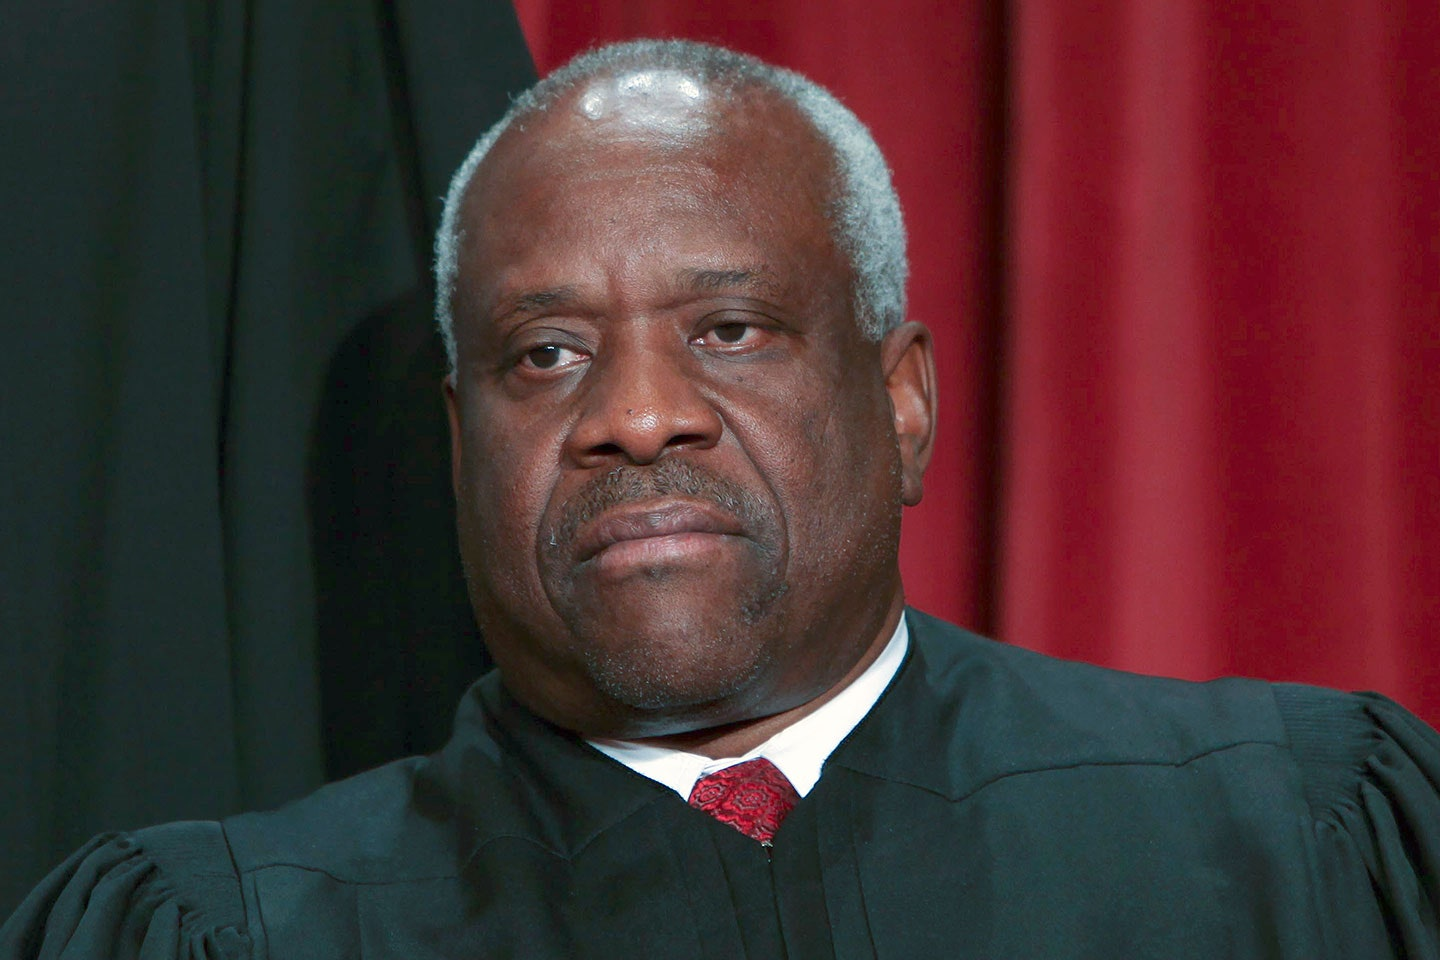 Justice Clarence Thomas, Who Upheld Texas Abortion Ban: It's a Shame the Media Politicizes the Supreme Court